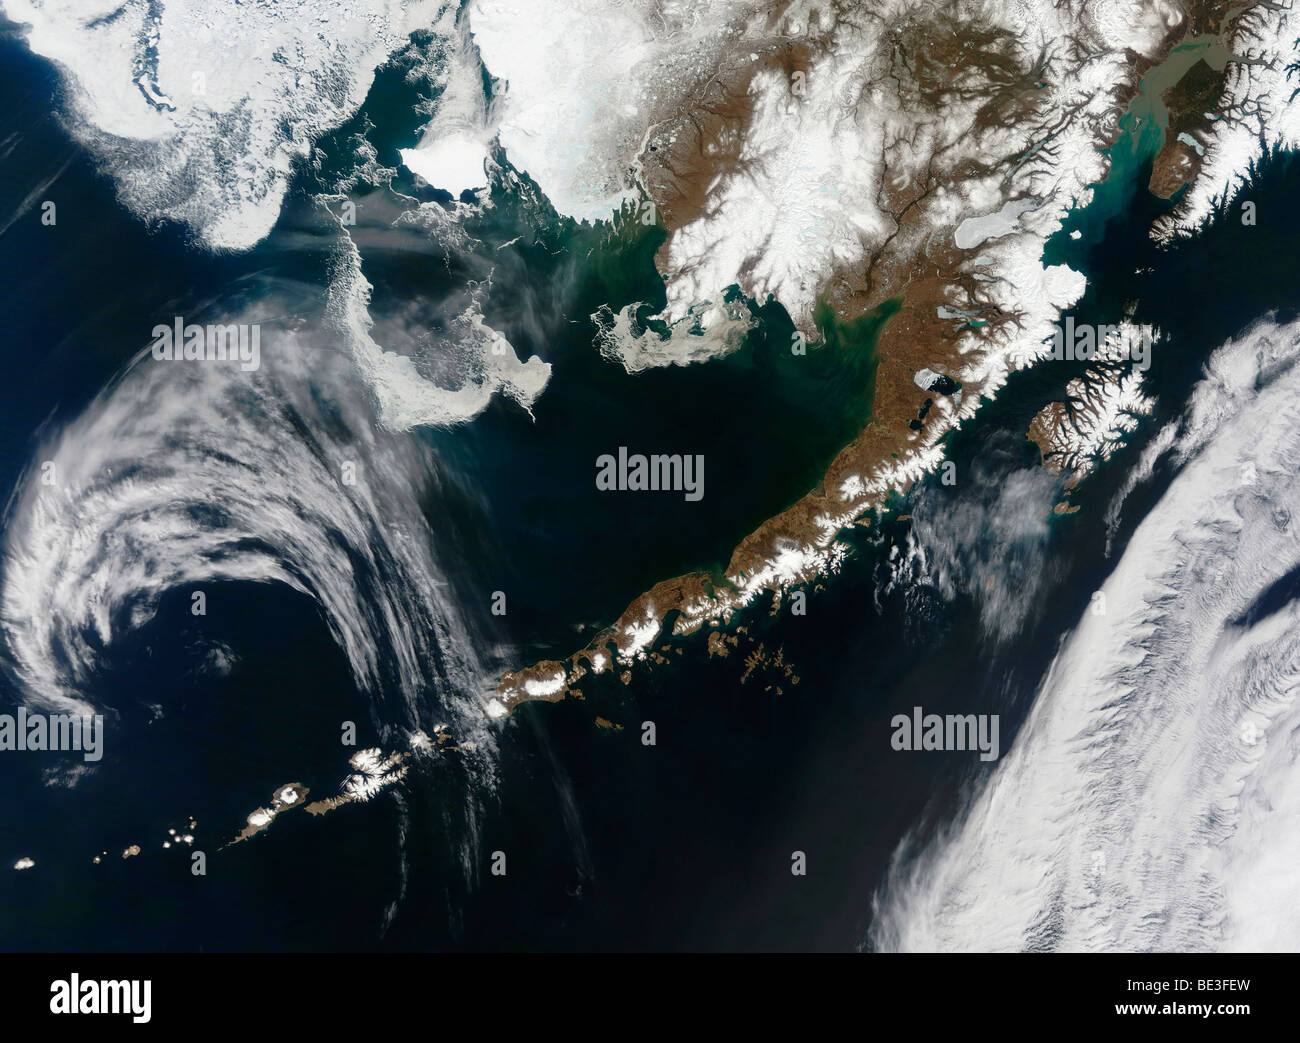 The Alaskan Peninsula and Aleutian Islands. - Stock Image